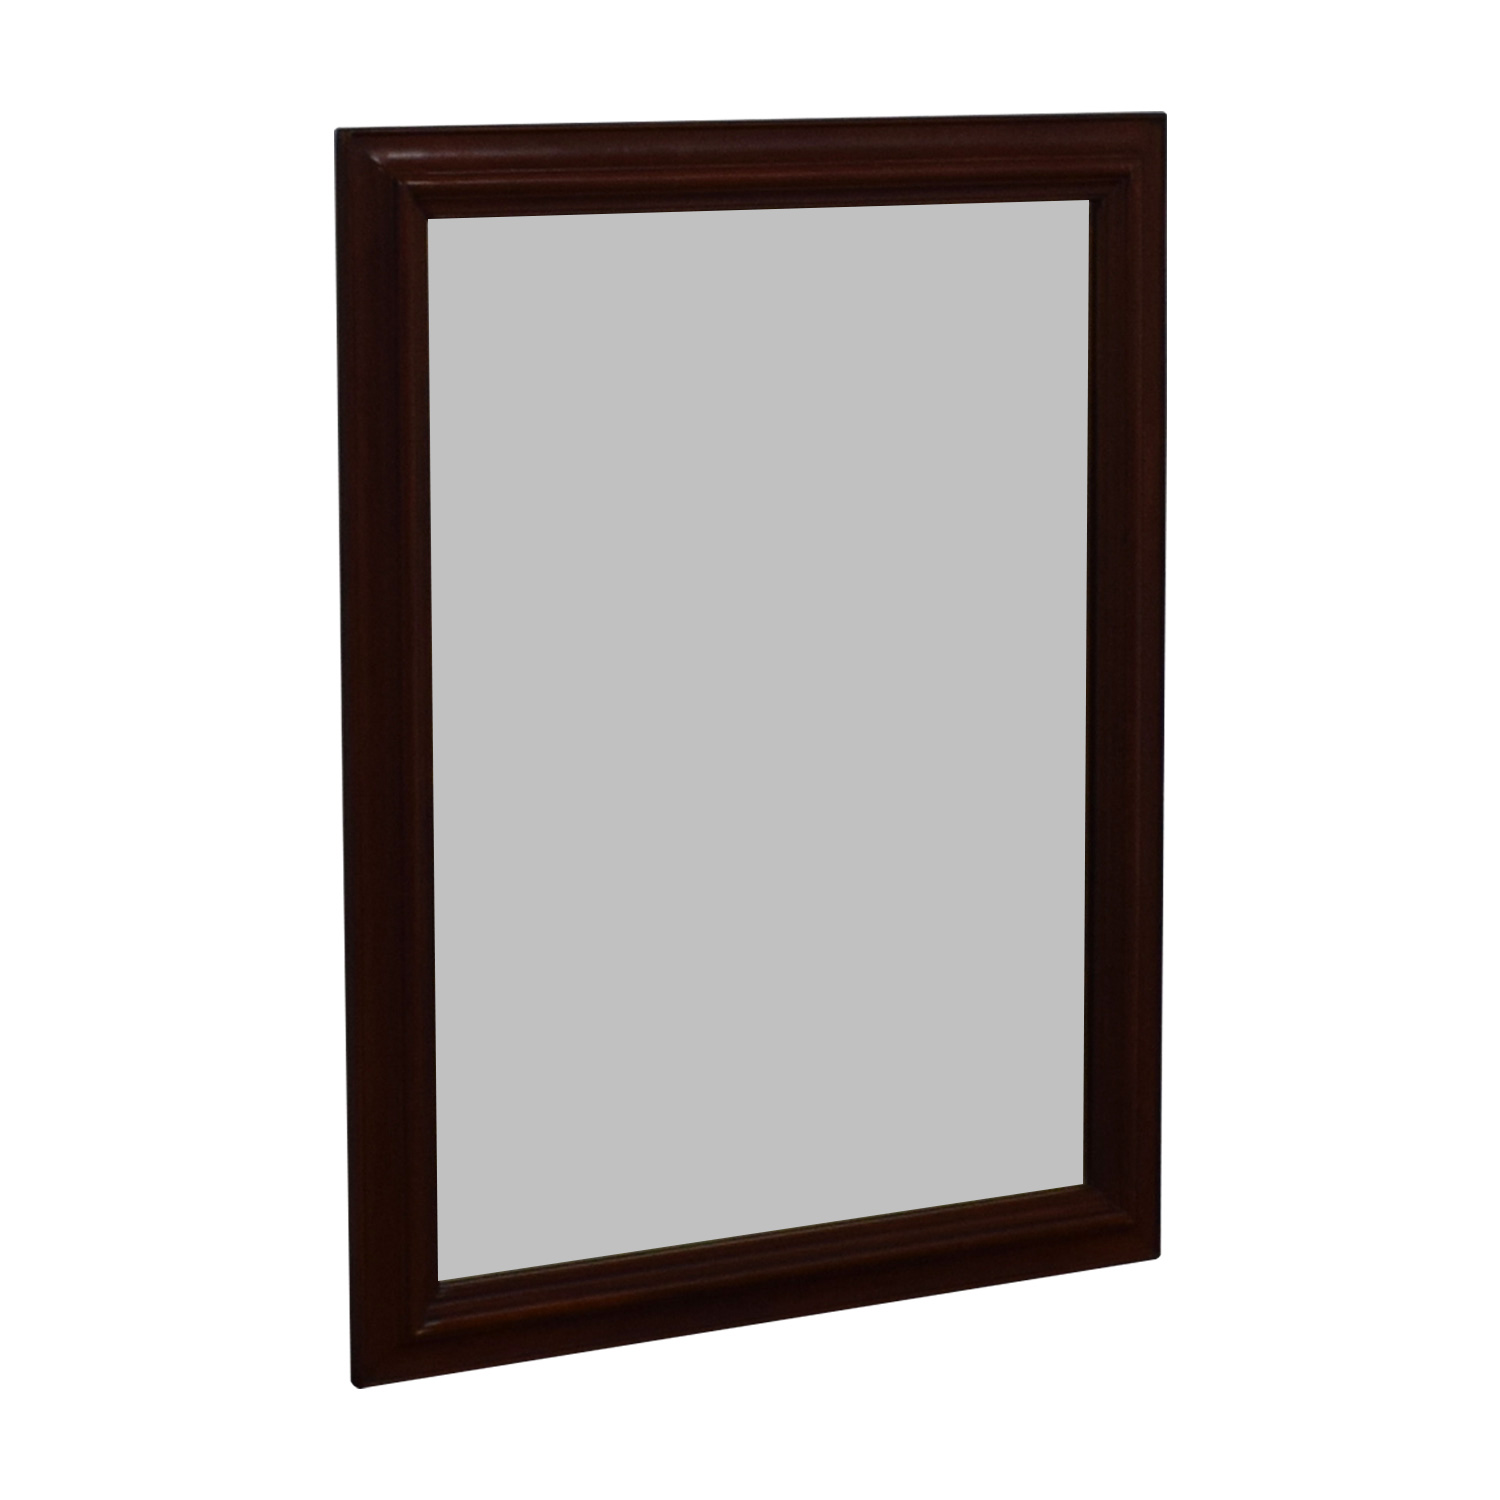 shop Willett Wildwood Willett Wildwood Cherry Mirror online